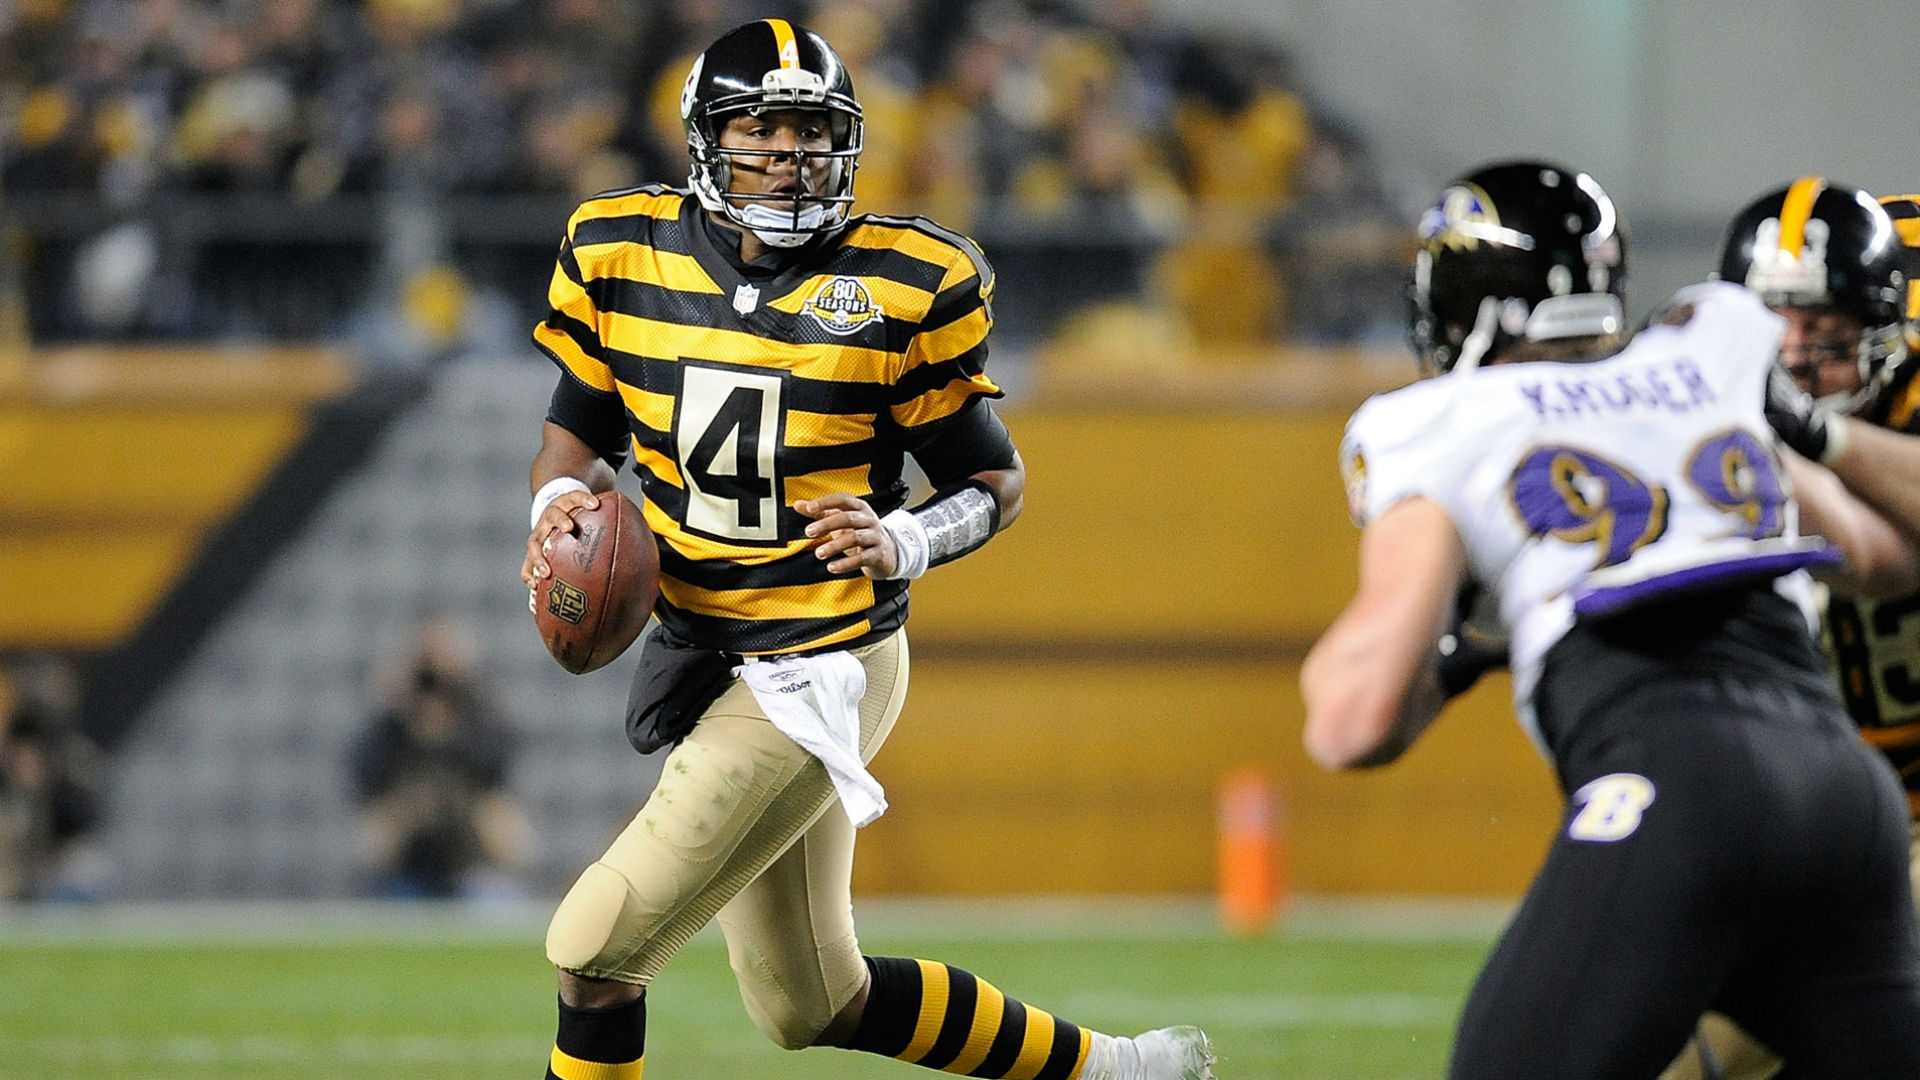 Worst football uniforms